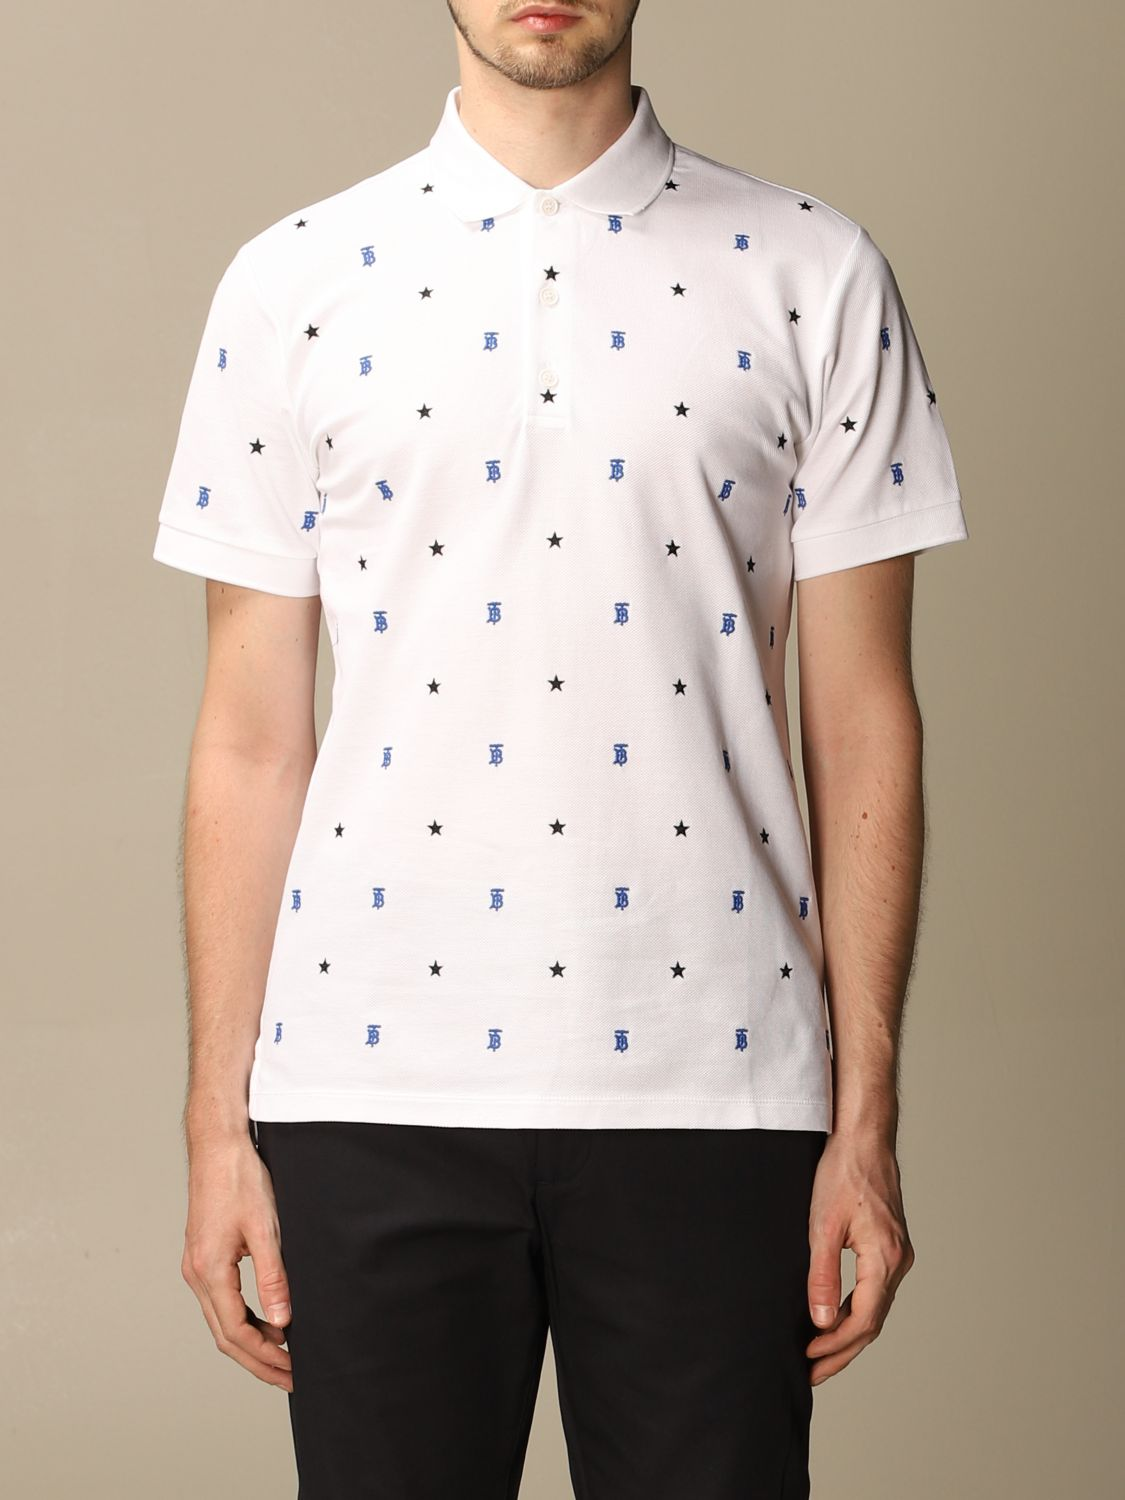 Polo shirt Burberry: Elsford Burberry polo shirt in cotton piqué with stars and TB monogram white 1